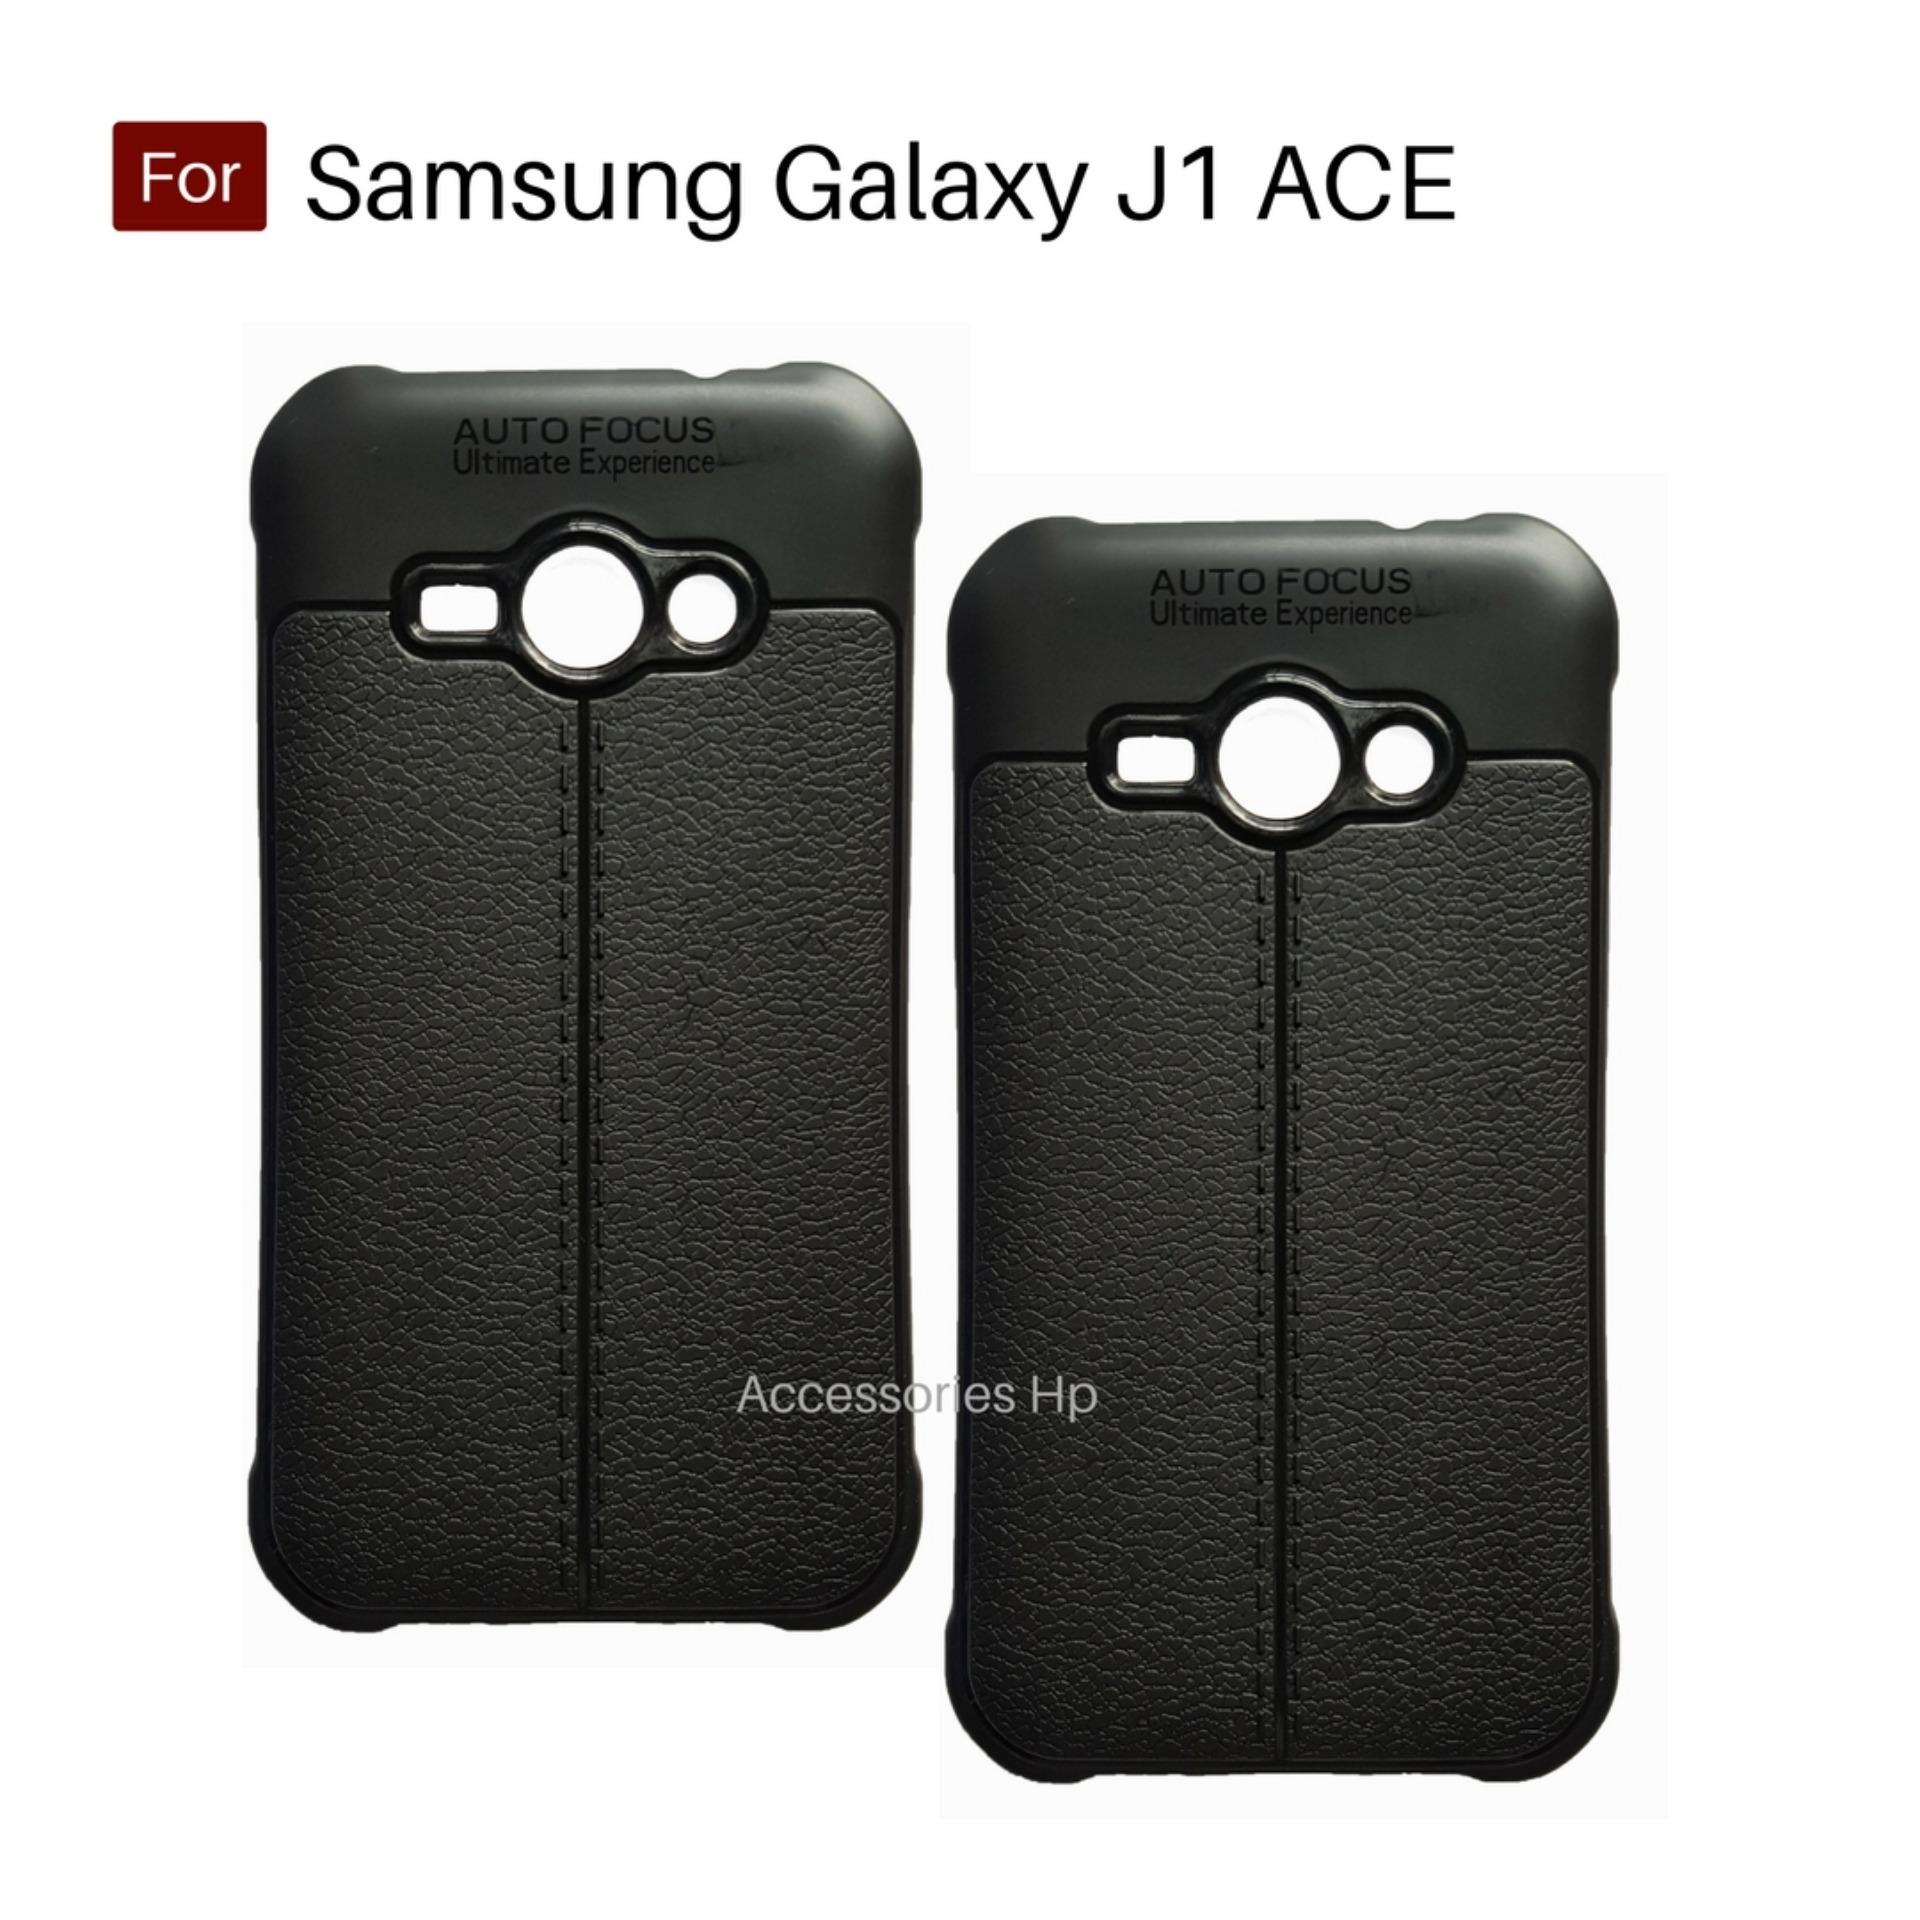 Accessories Hp Premium Ultimate Shockproof Leather Case For Samsung Galaxy J1 Ace - Black